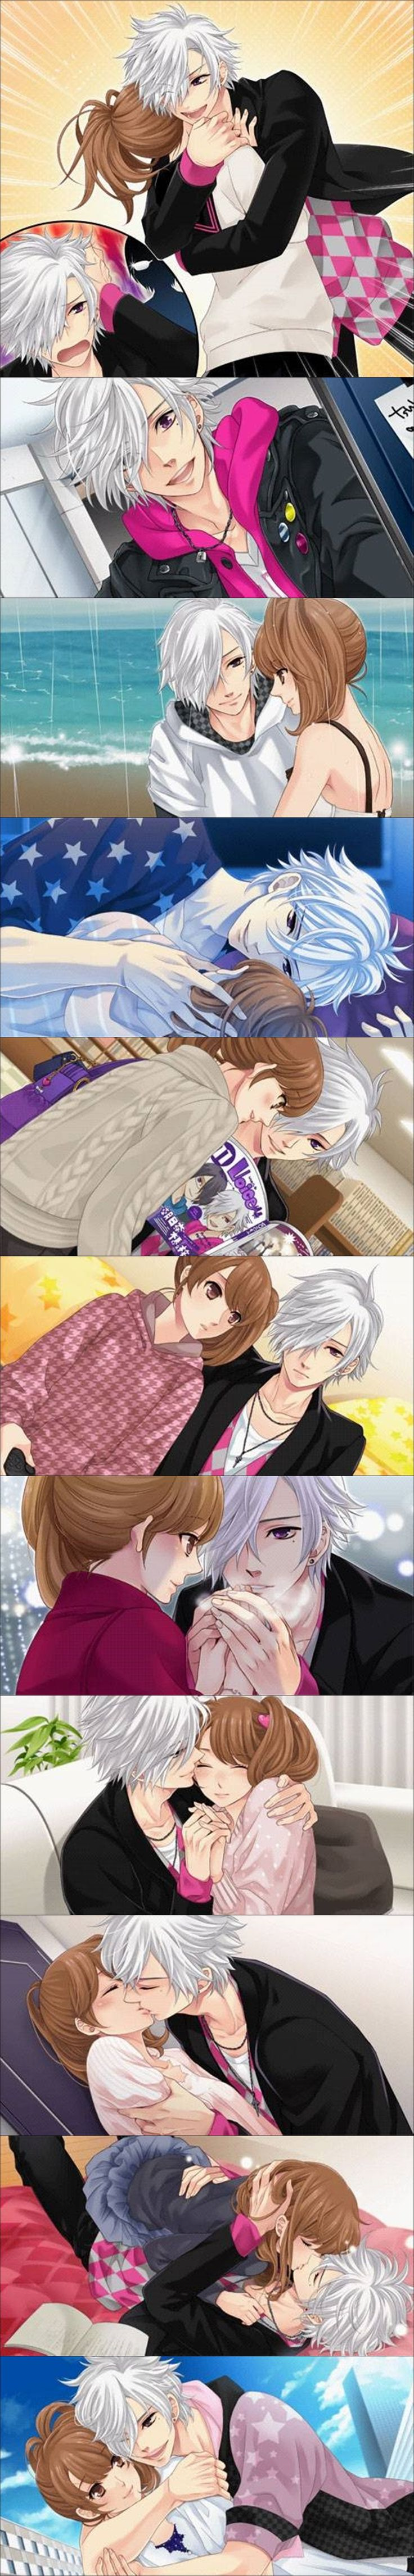 Brothers Conflict - Tsubaki and Ema